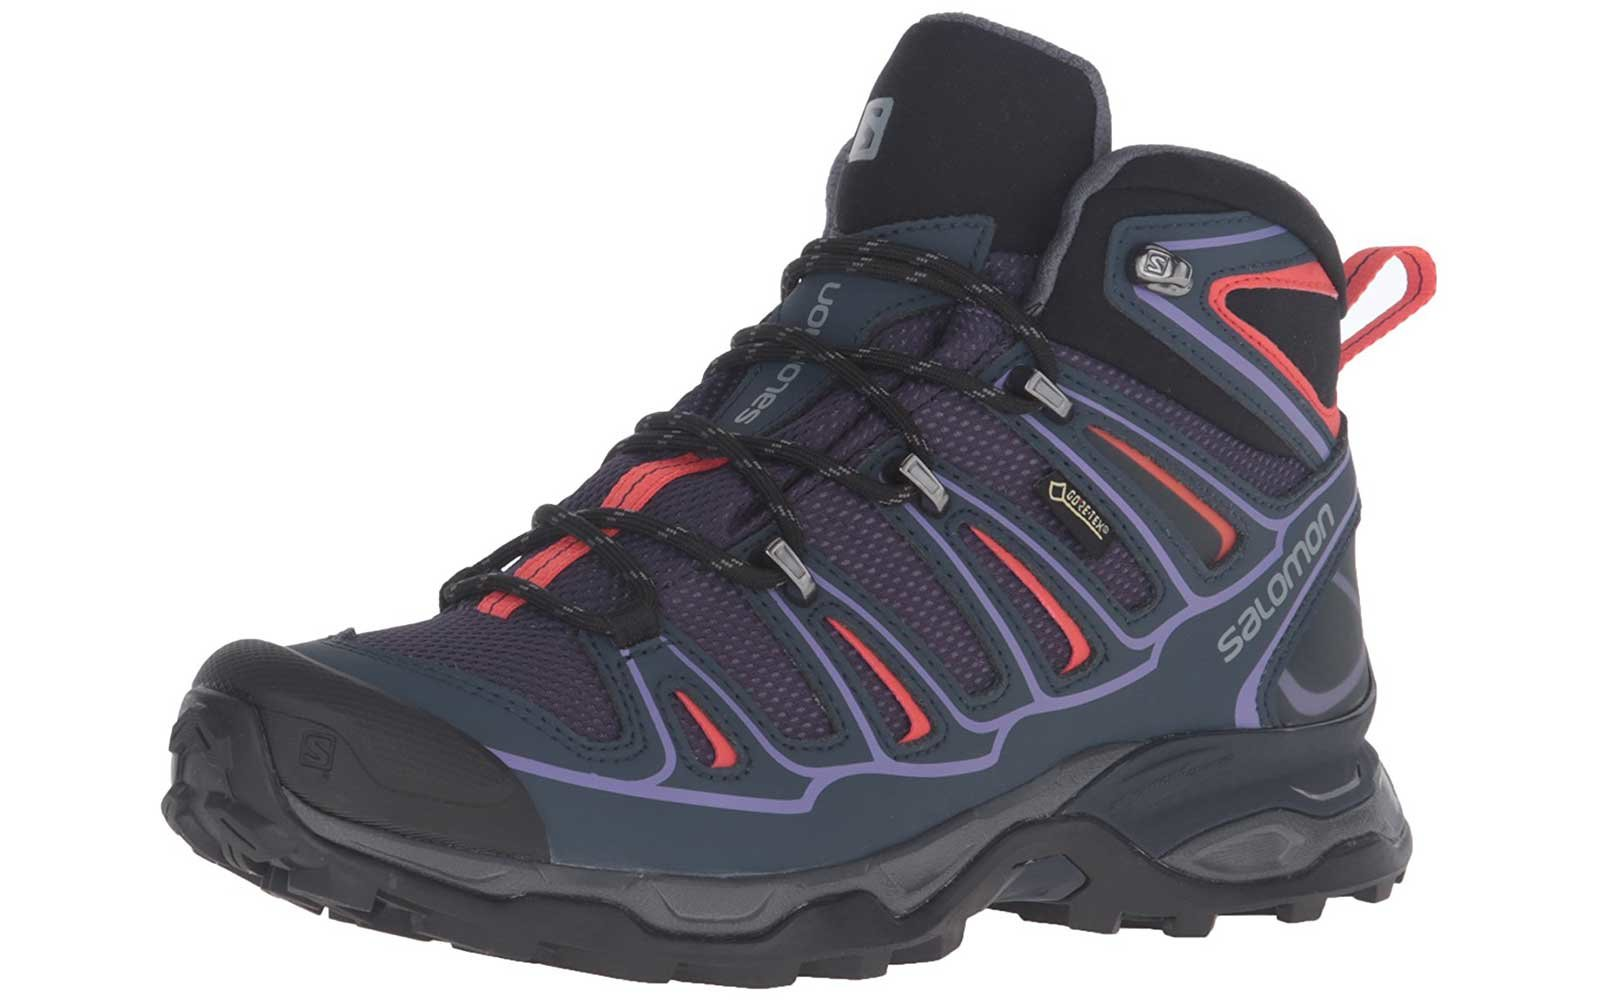 c88f6ee2393 Salomon Women s X Ultra Mid 2 GTX Hiking Shoe